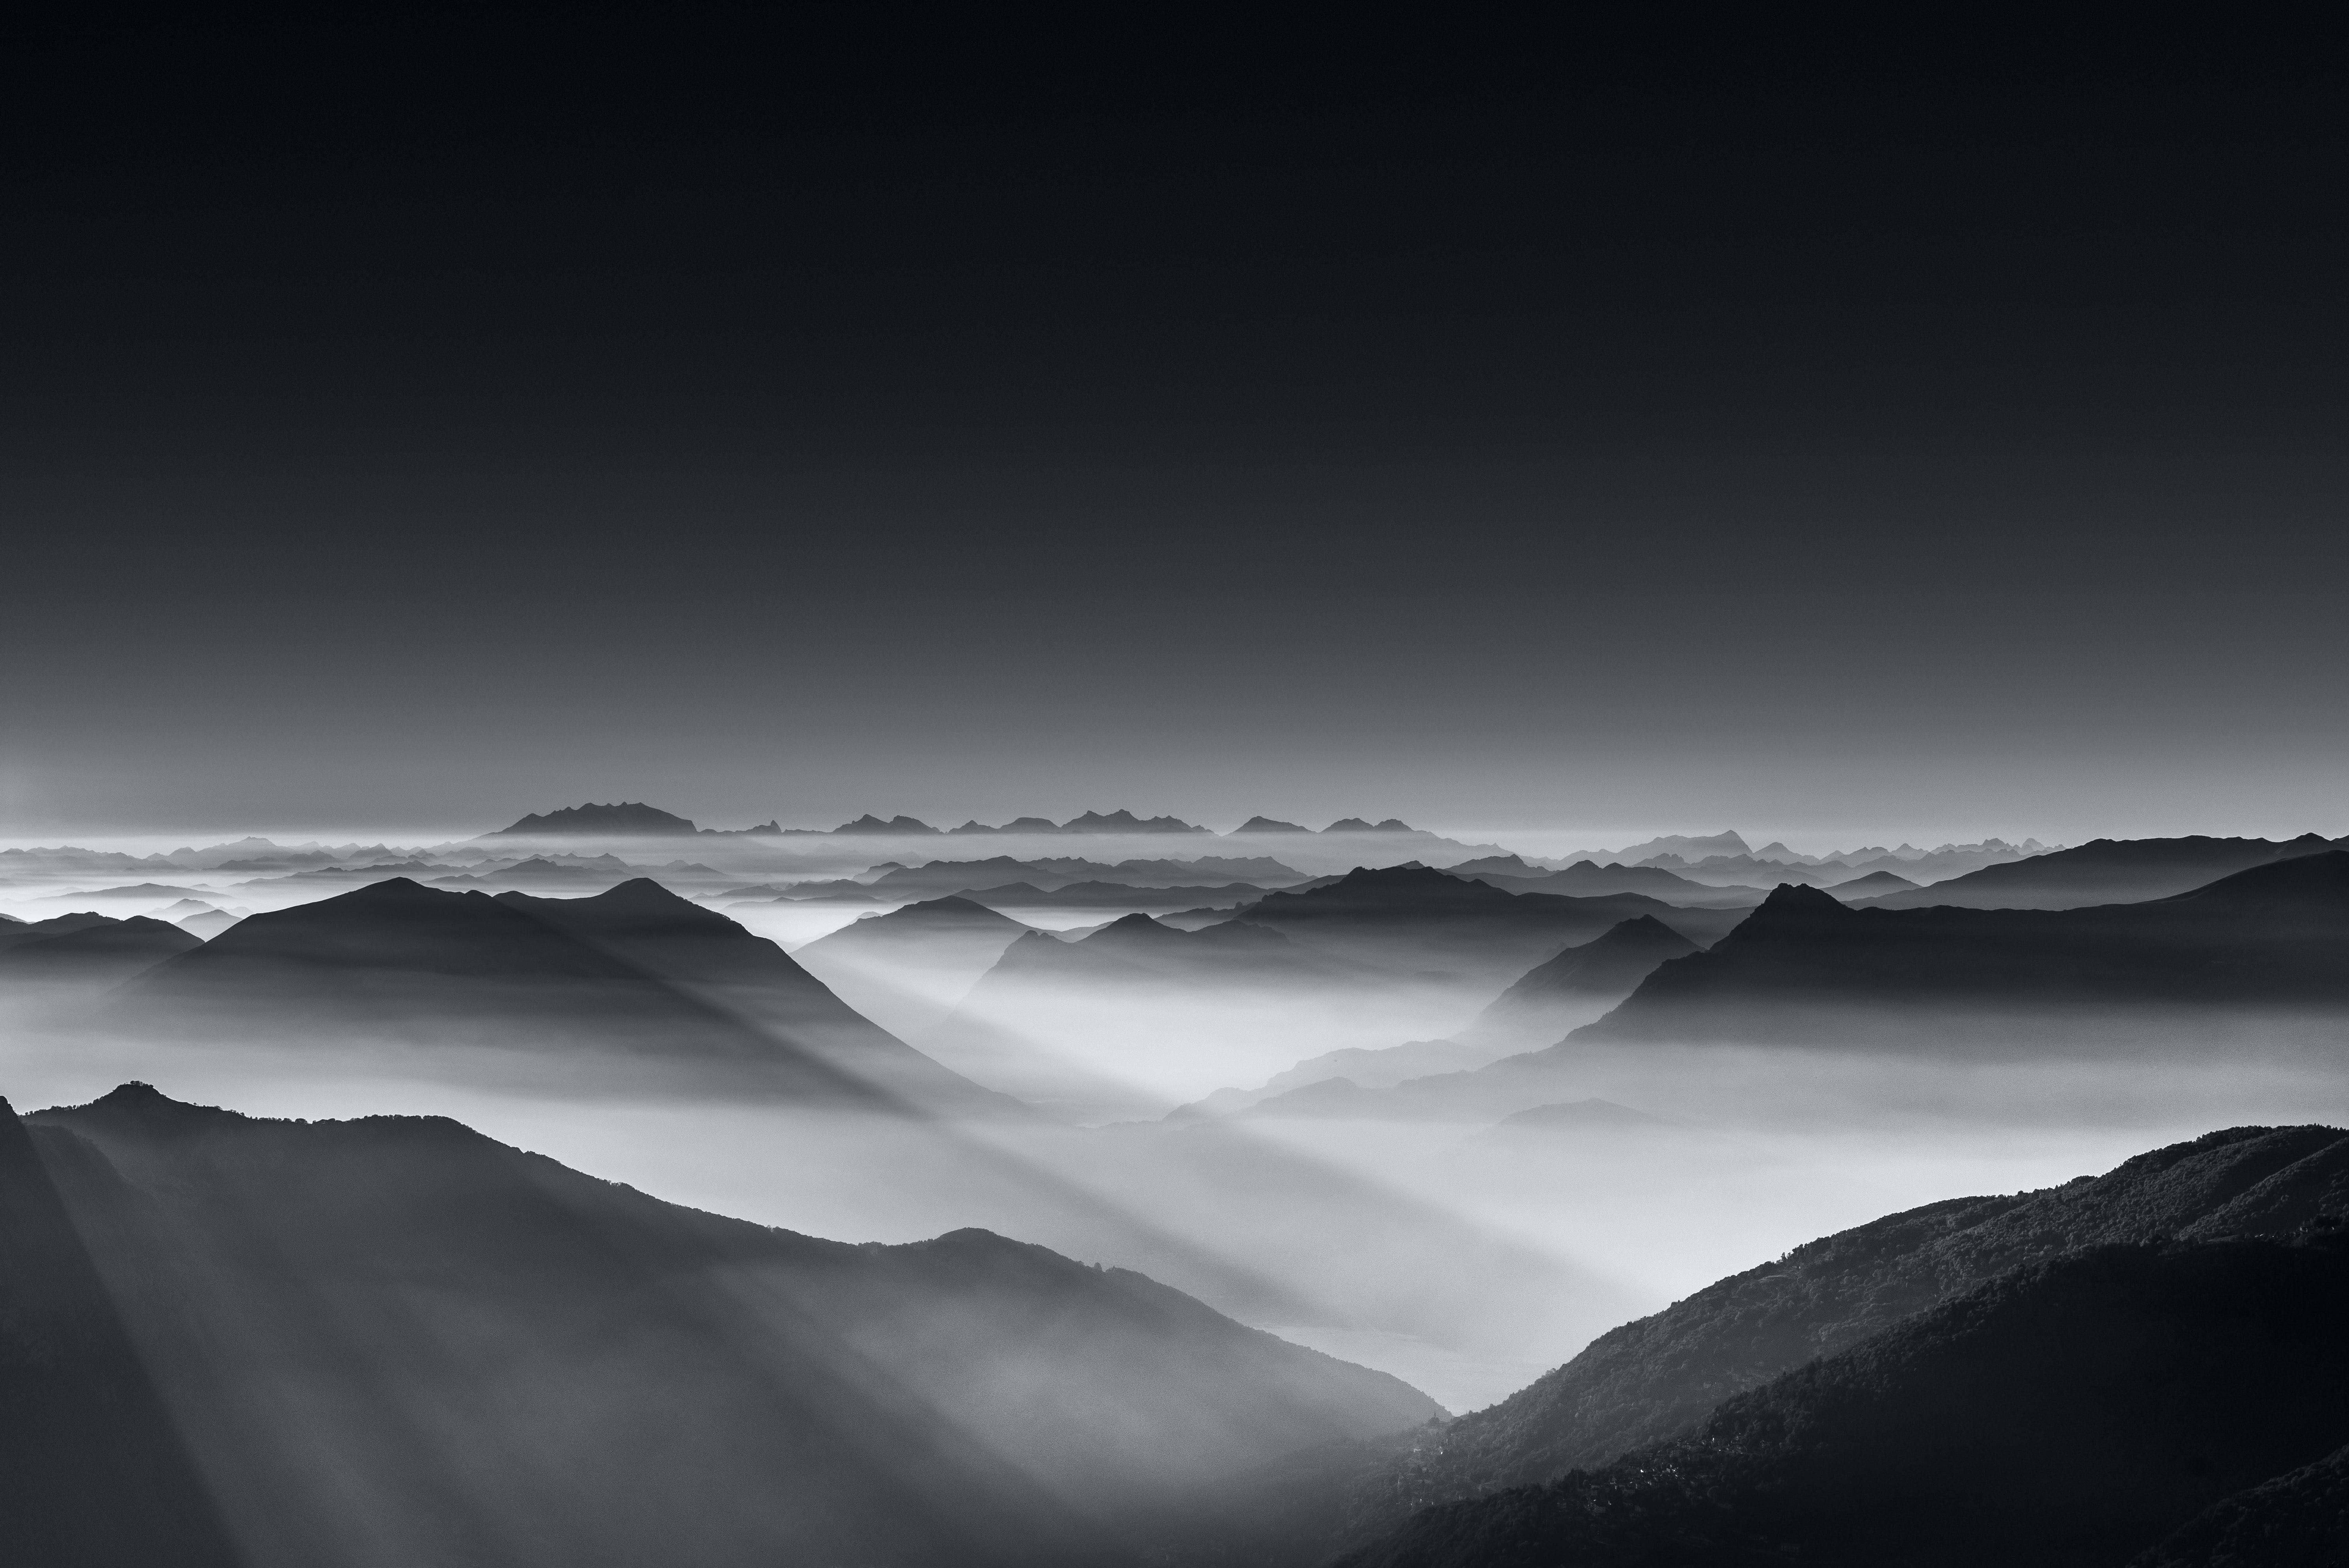 black and gray mountains illustration